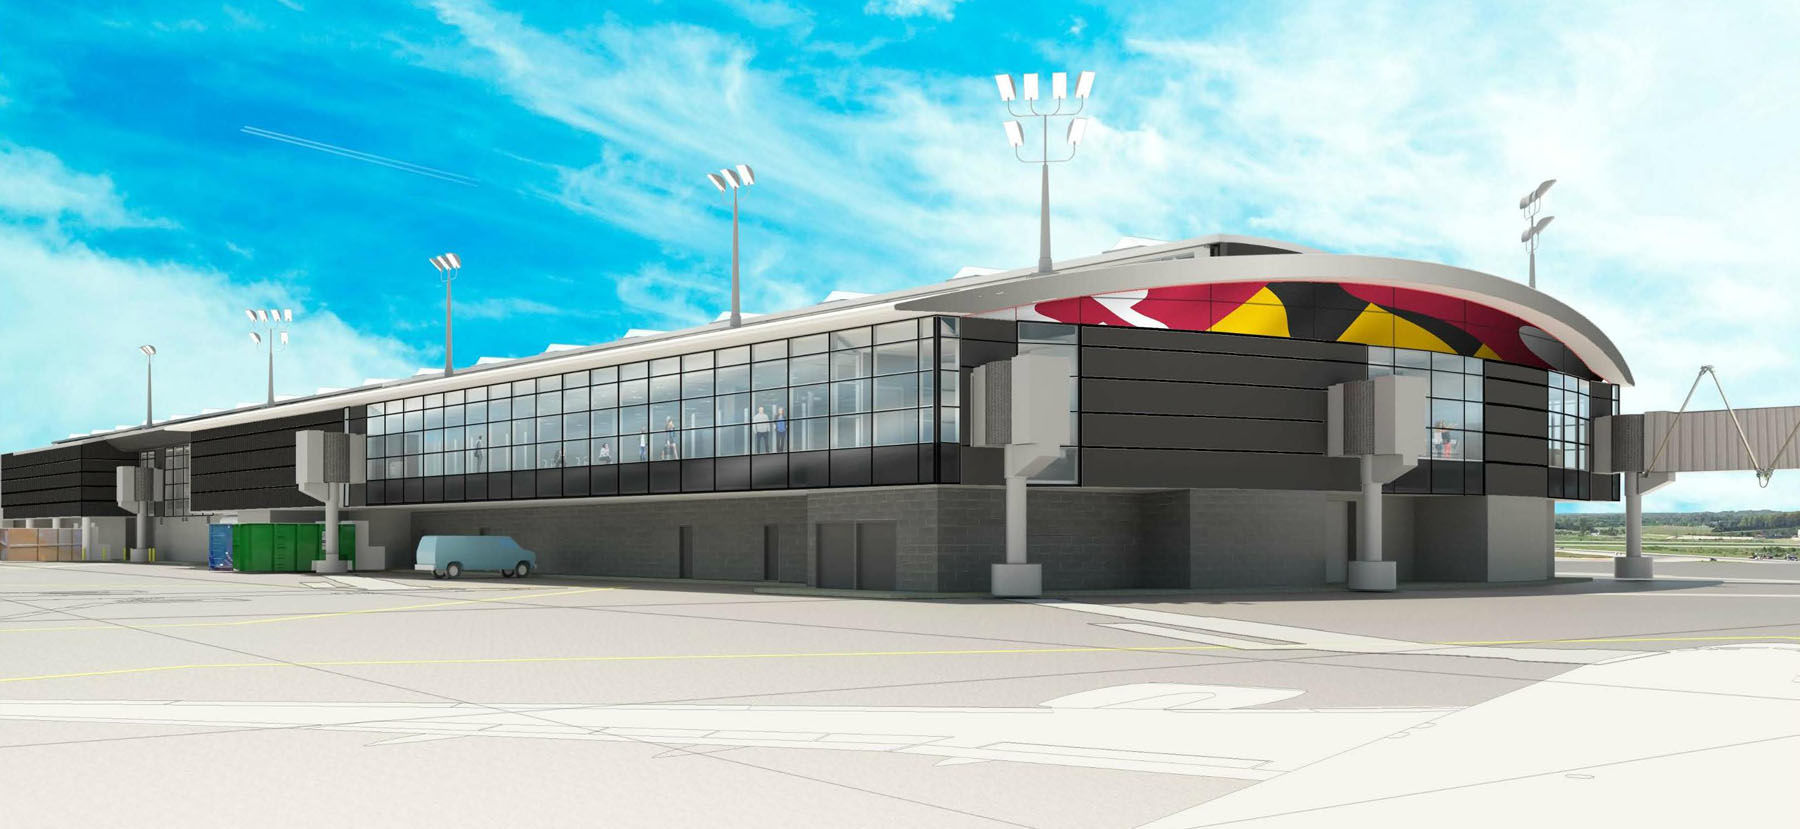 Renderings of the proposed expansion at BWI Marshall's Concourse A. The work will accommodate Southwest Airlines' expansion and allow for the construction of a new baggage-handling system. (Courtesy BWI Marshall Airport)